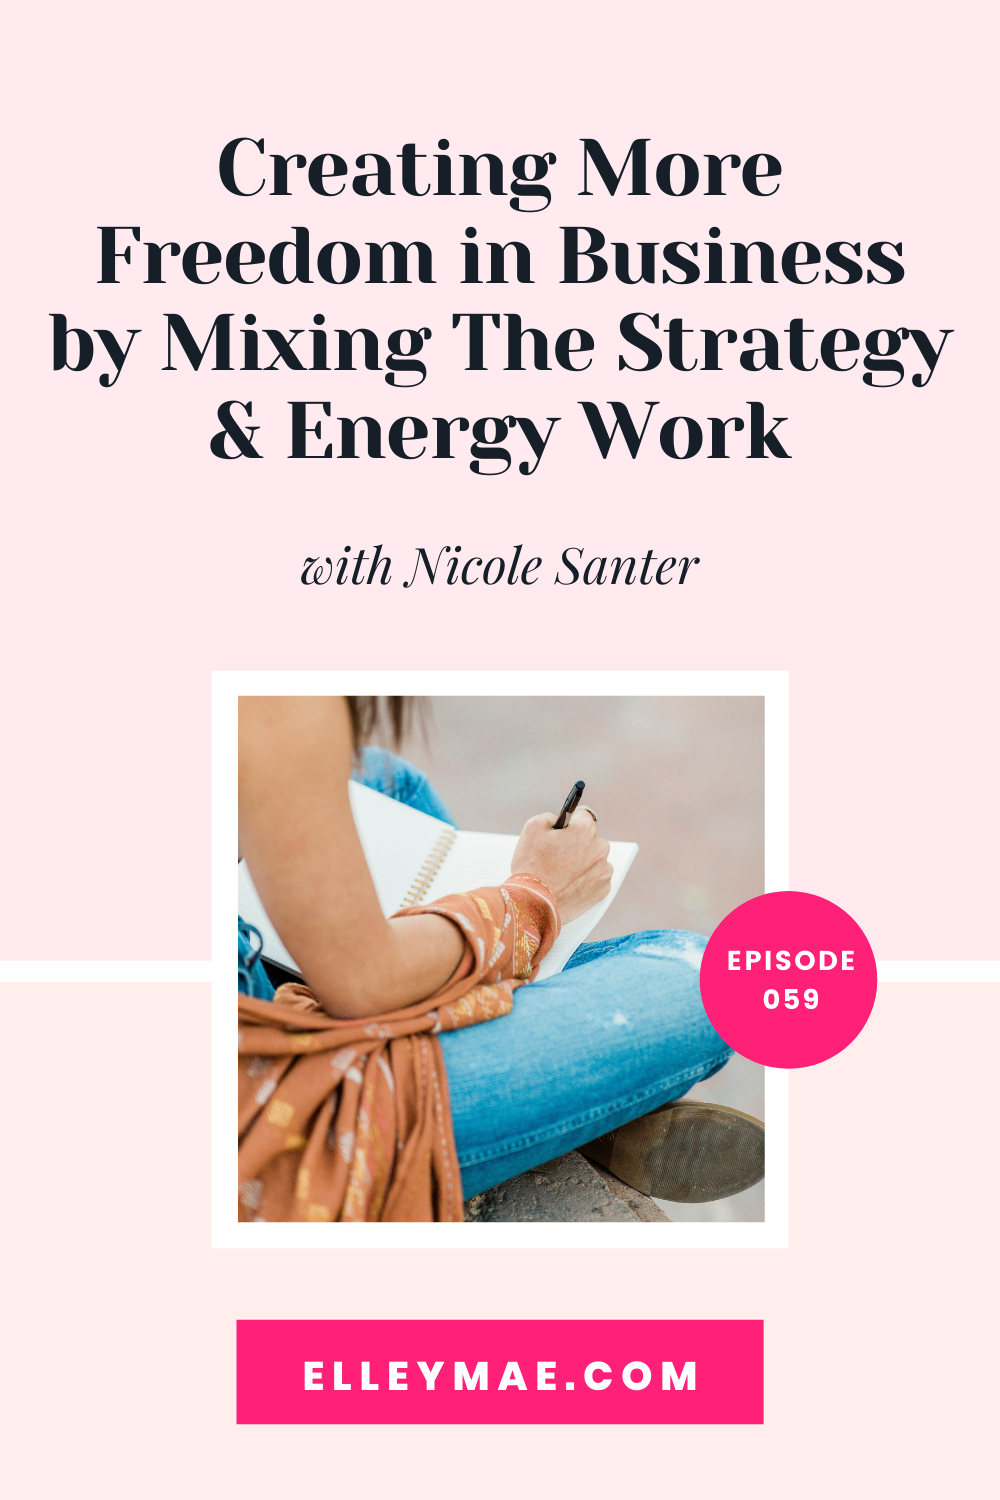 059. Creating More Freedom in Business by Mixing The Strategy & Energy Work with Nicole Santer